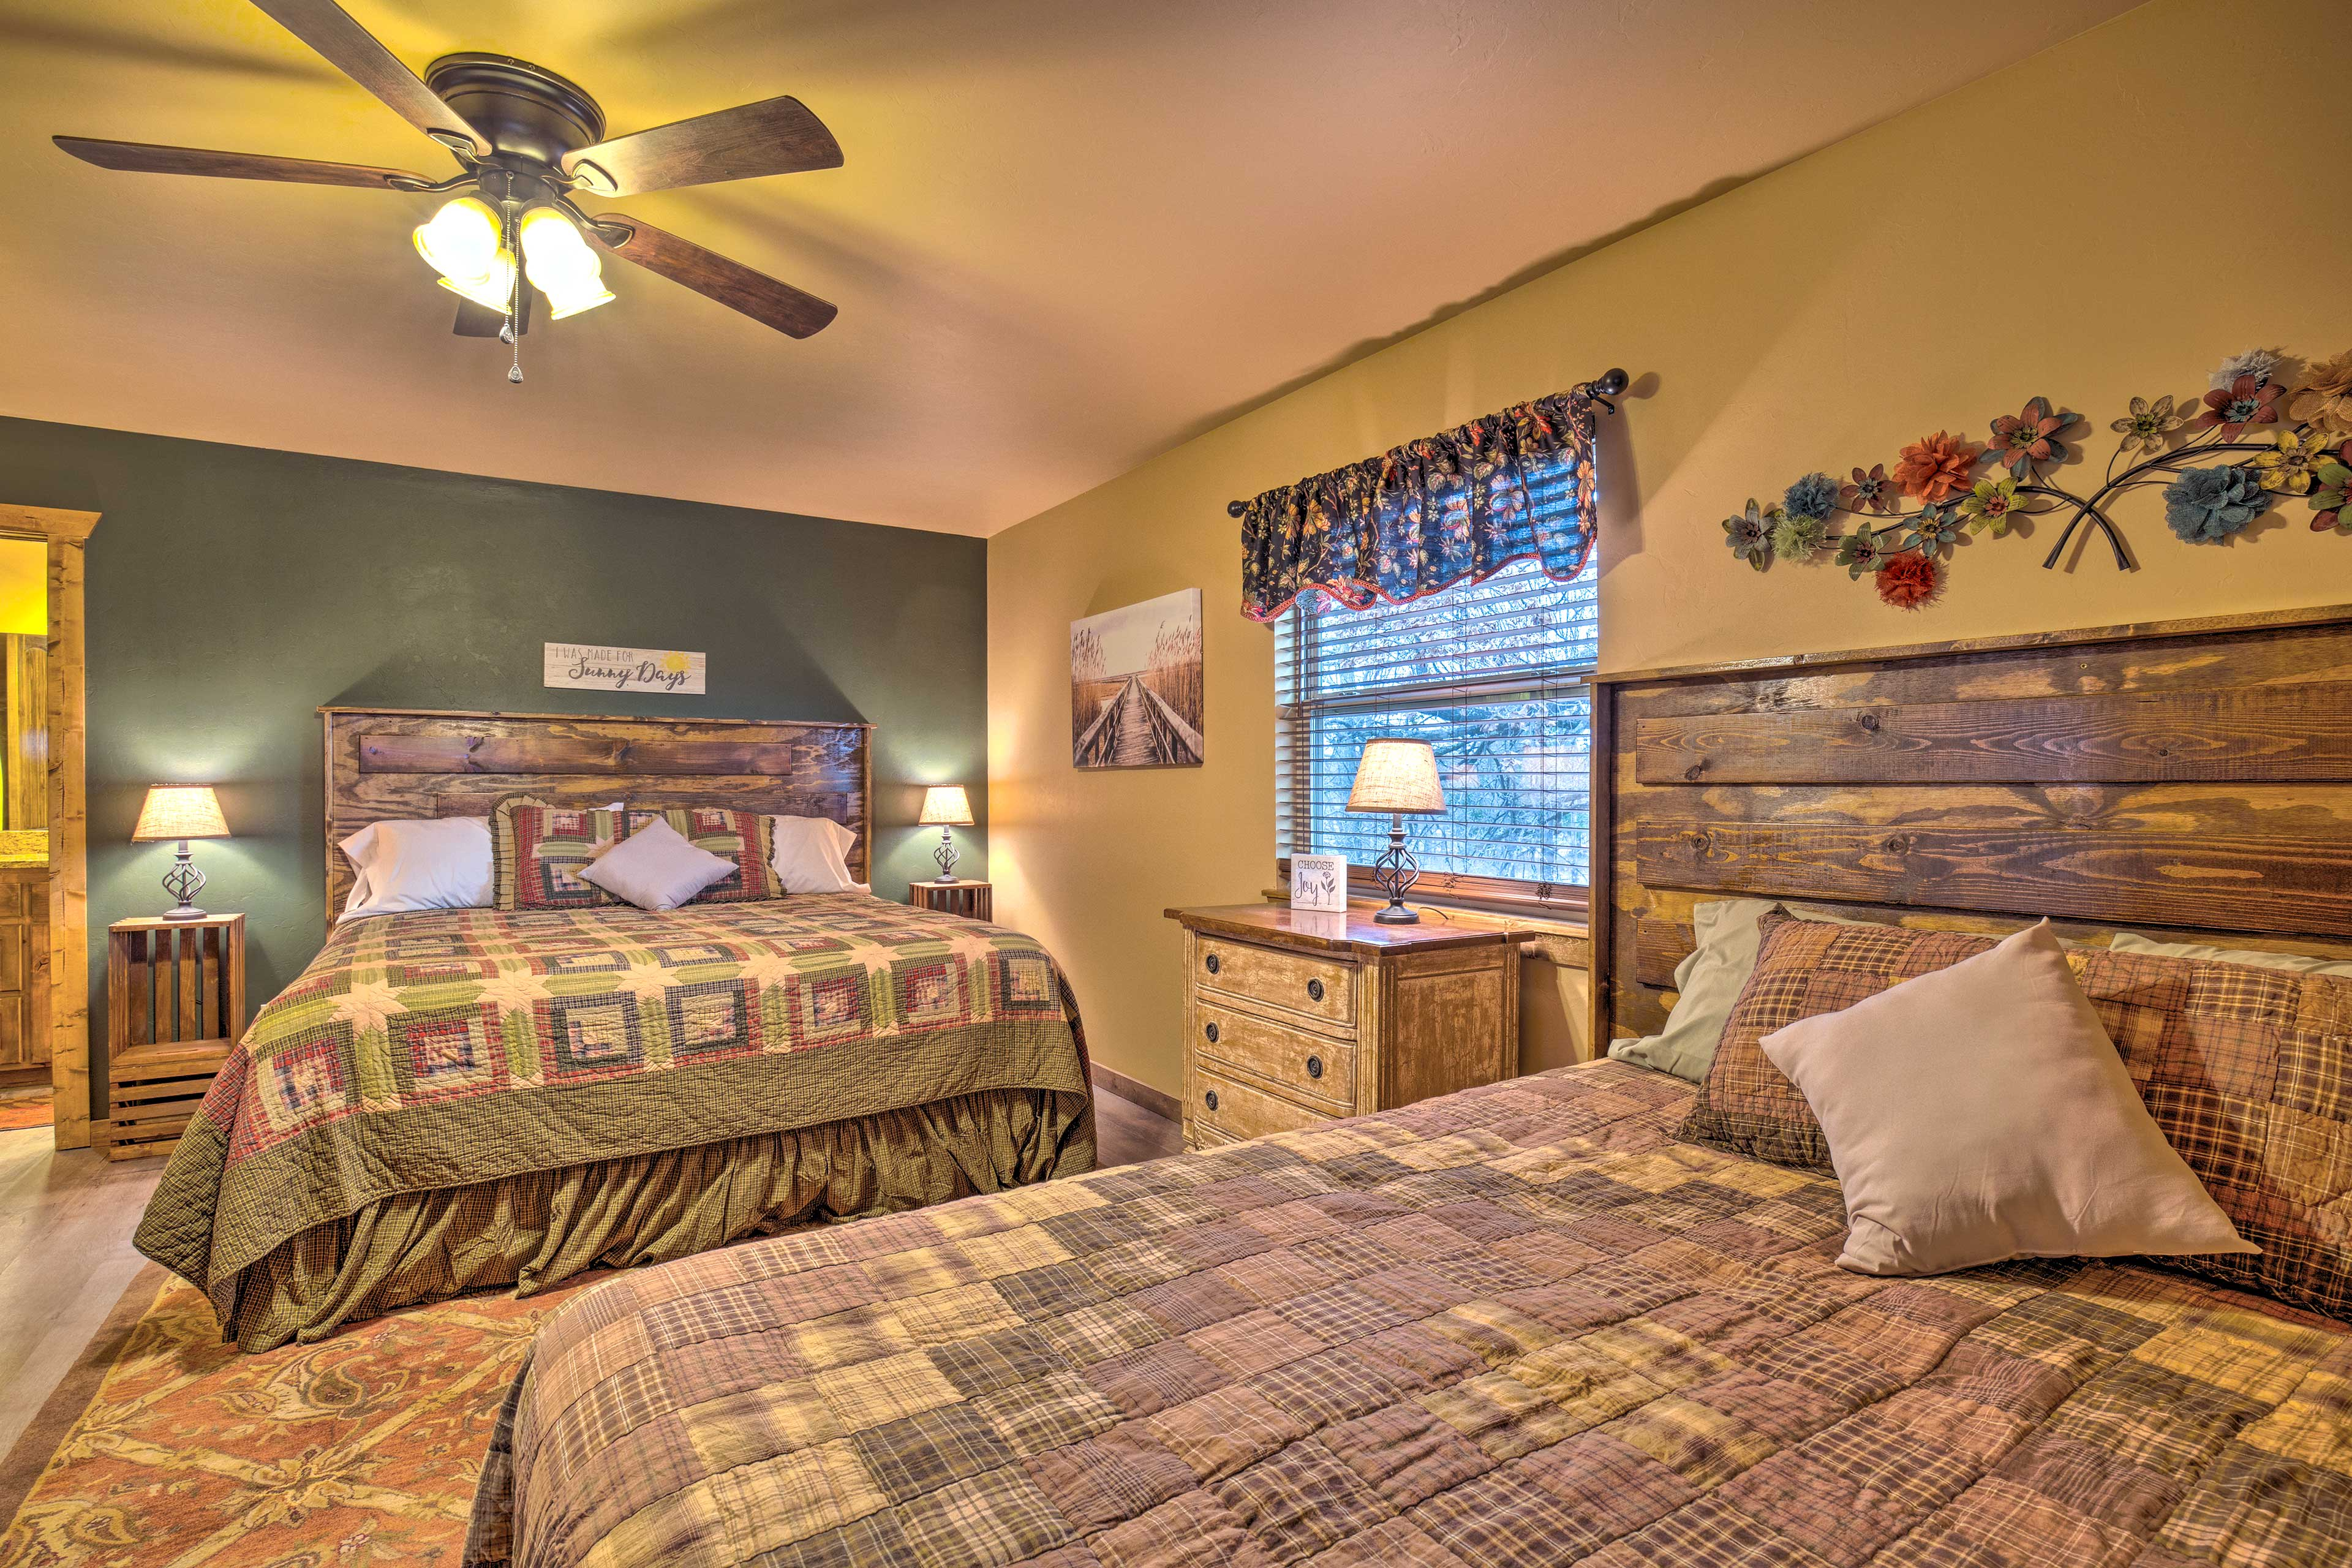 This room includes a king bed, queen bed, and twin bunk beds.